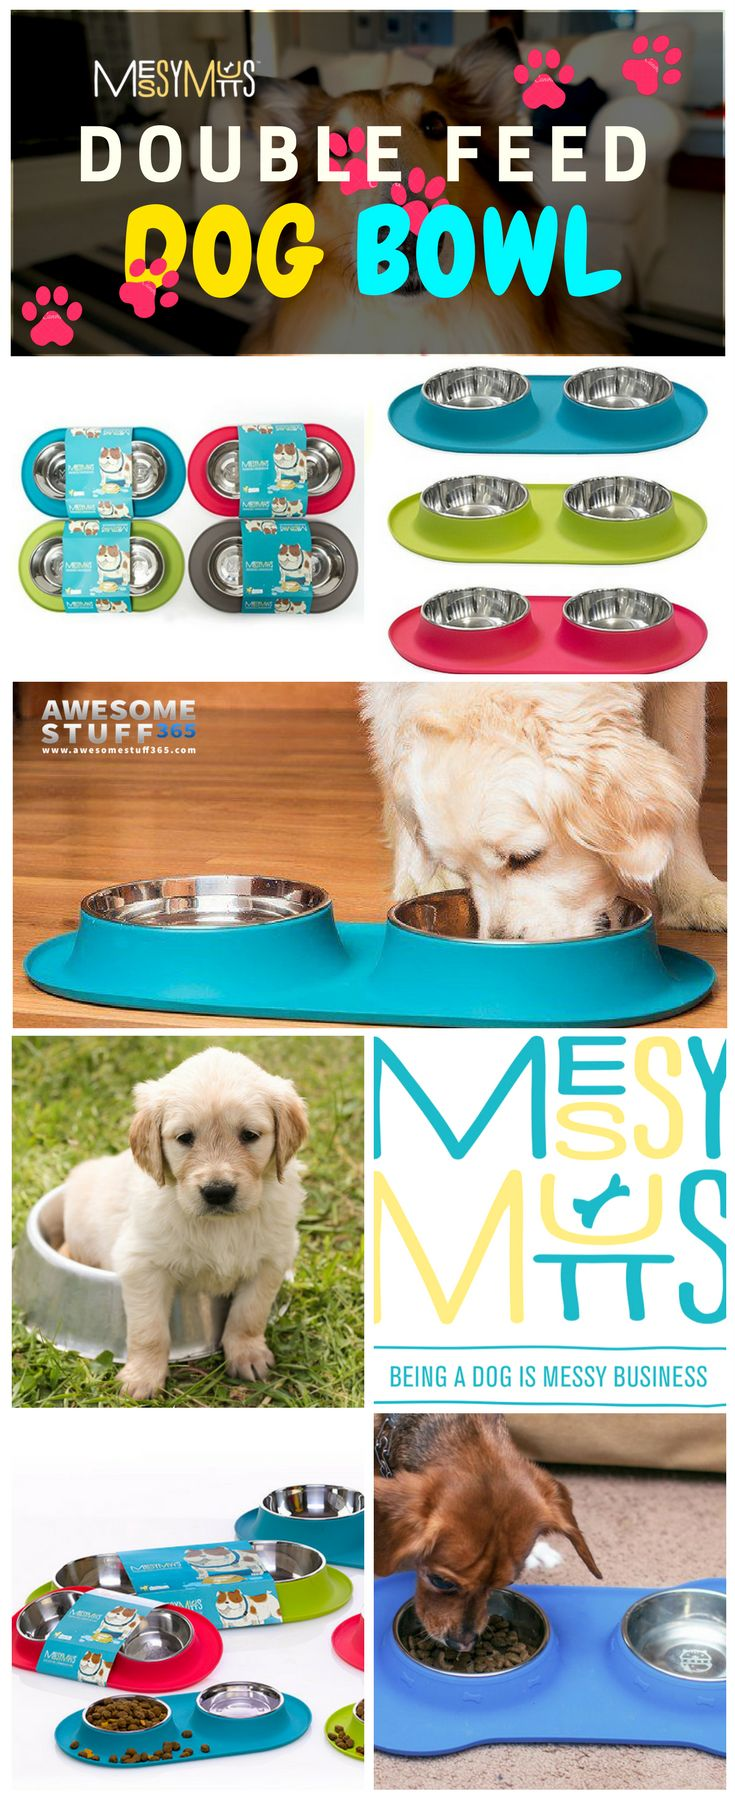 Keep your pet's feeding bowls in one place, mess-free, and prevent damaging the floor with this Double-Feed Dog Bowl!  Most of all, it is removable and dishwasher safe! Check it out ⬆